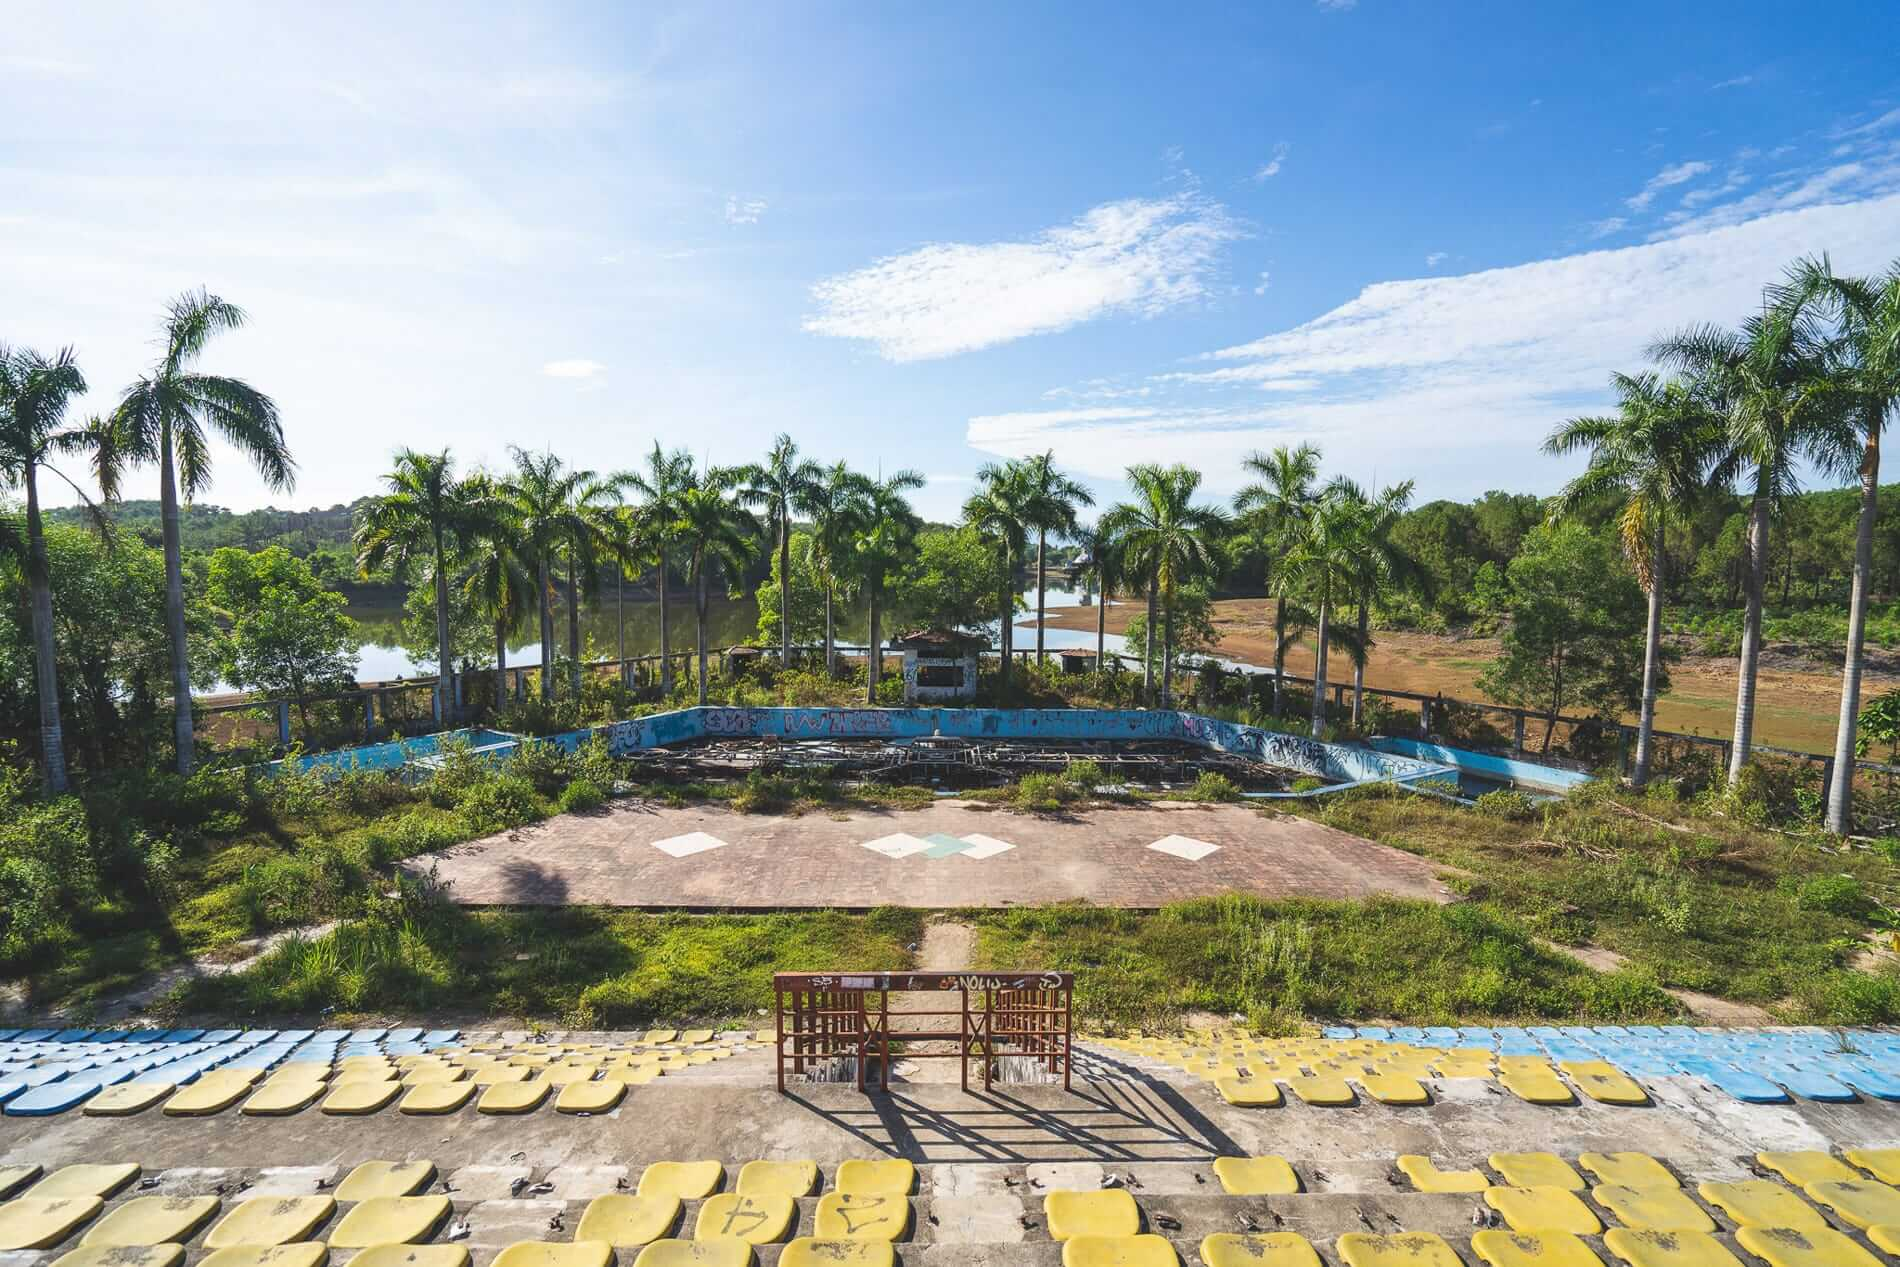 Hue's Abandoned Water Park